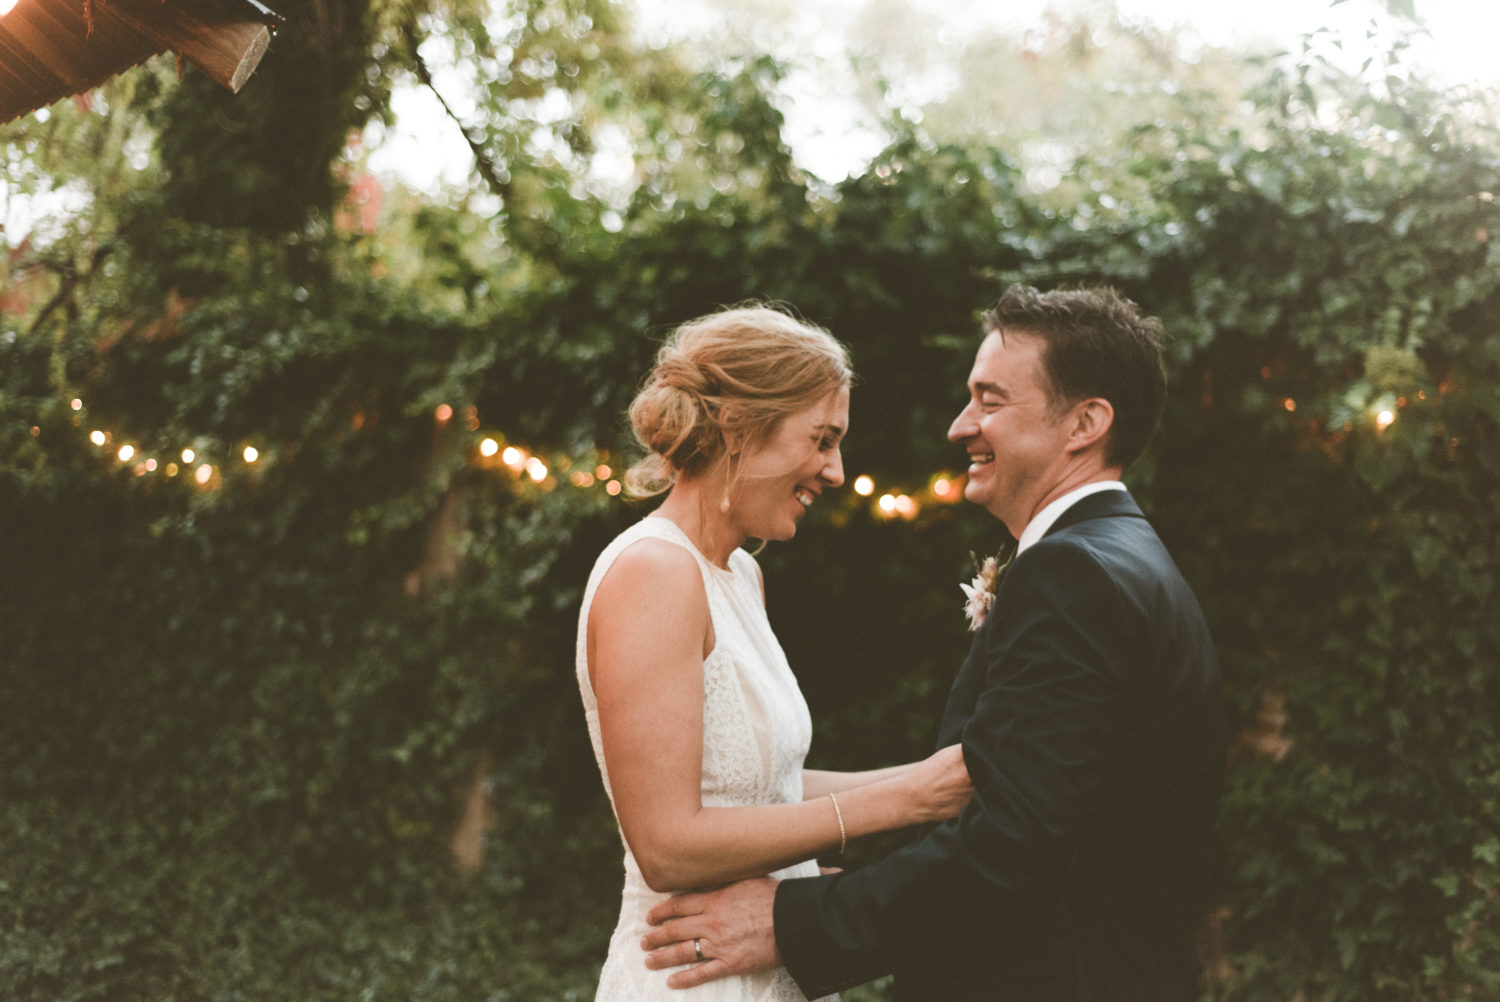 Albuquerque wedding photographer Ashley Joyce Photography